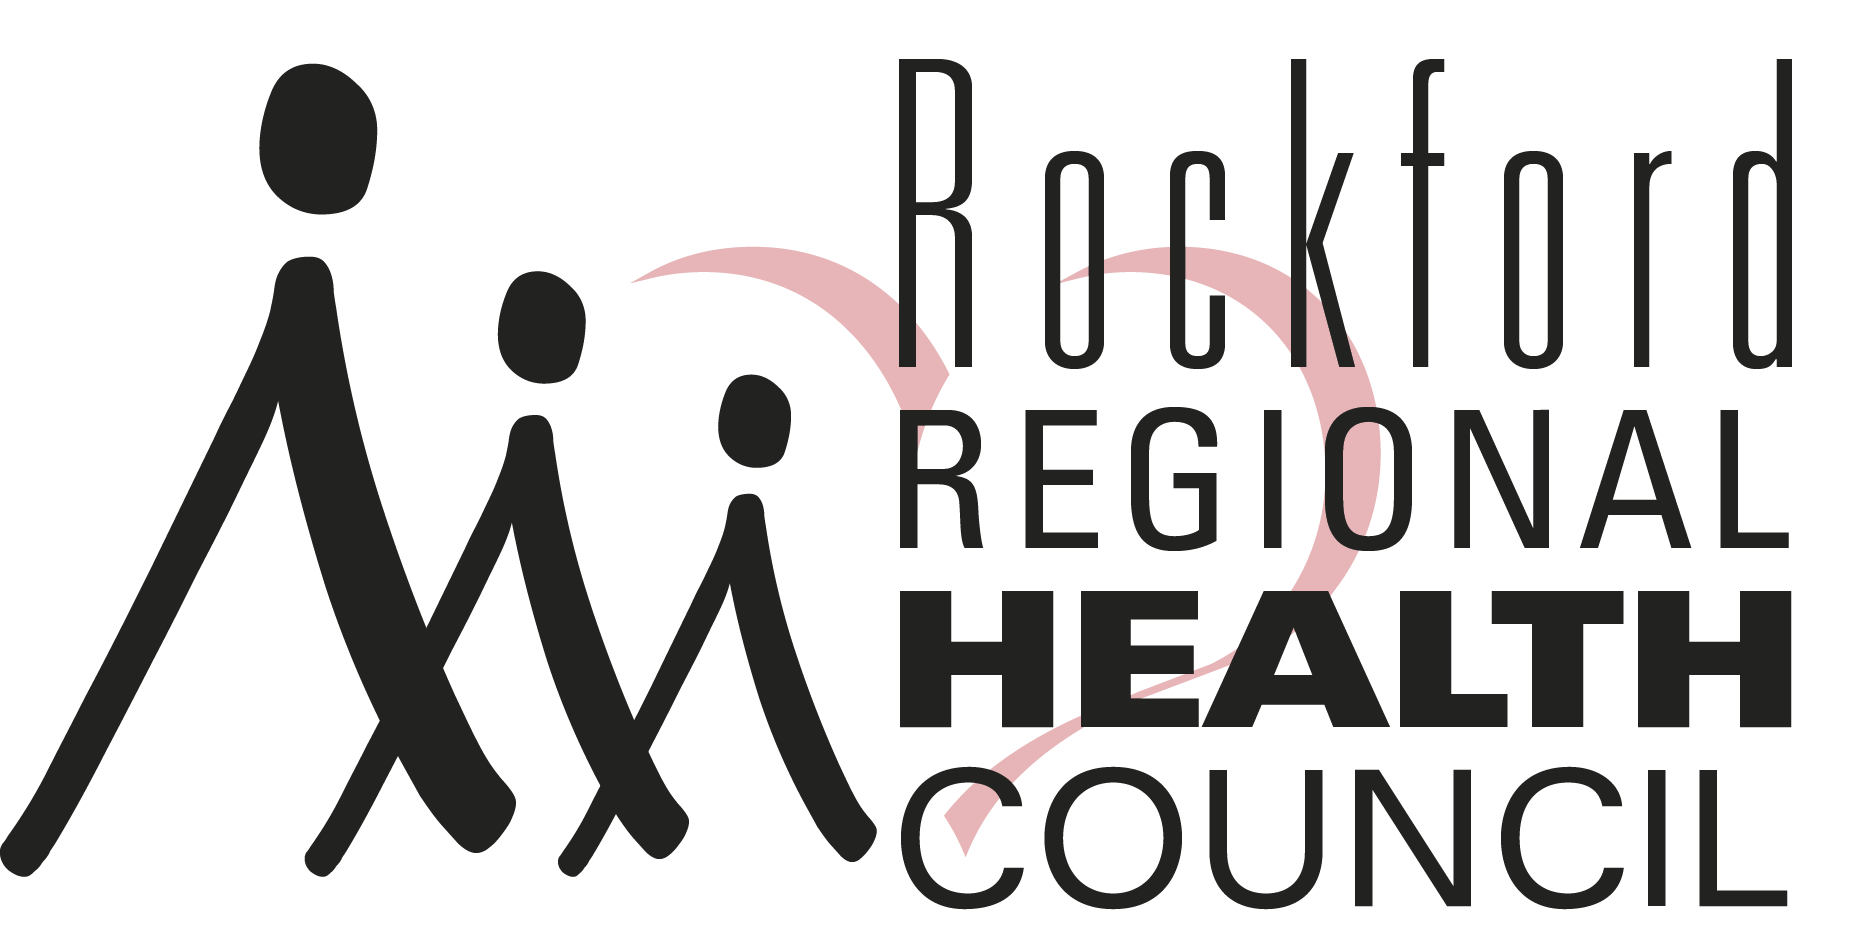 Rockford Regional Health Council